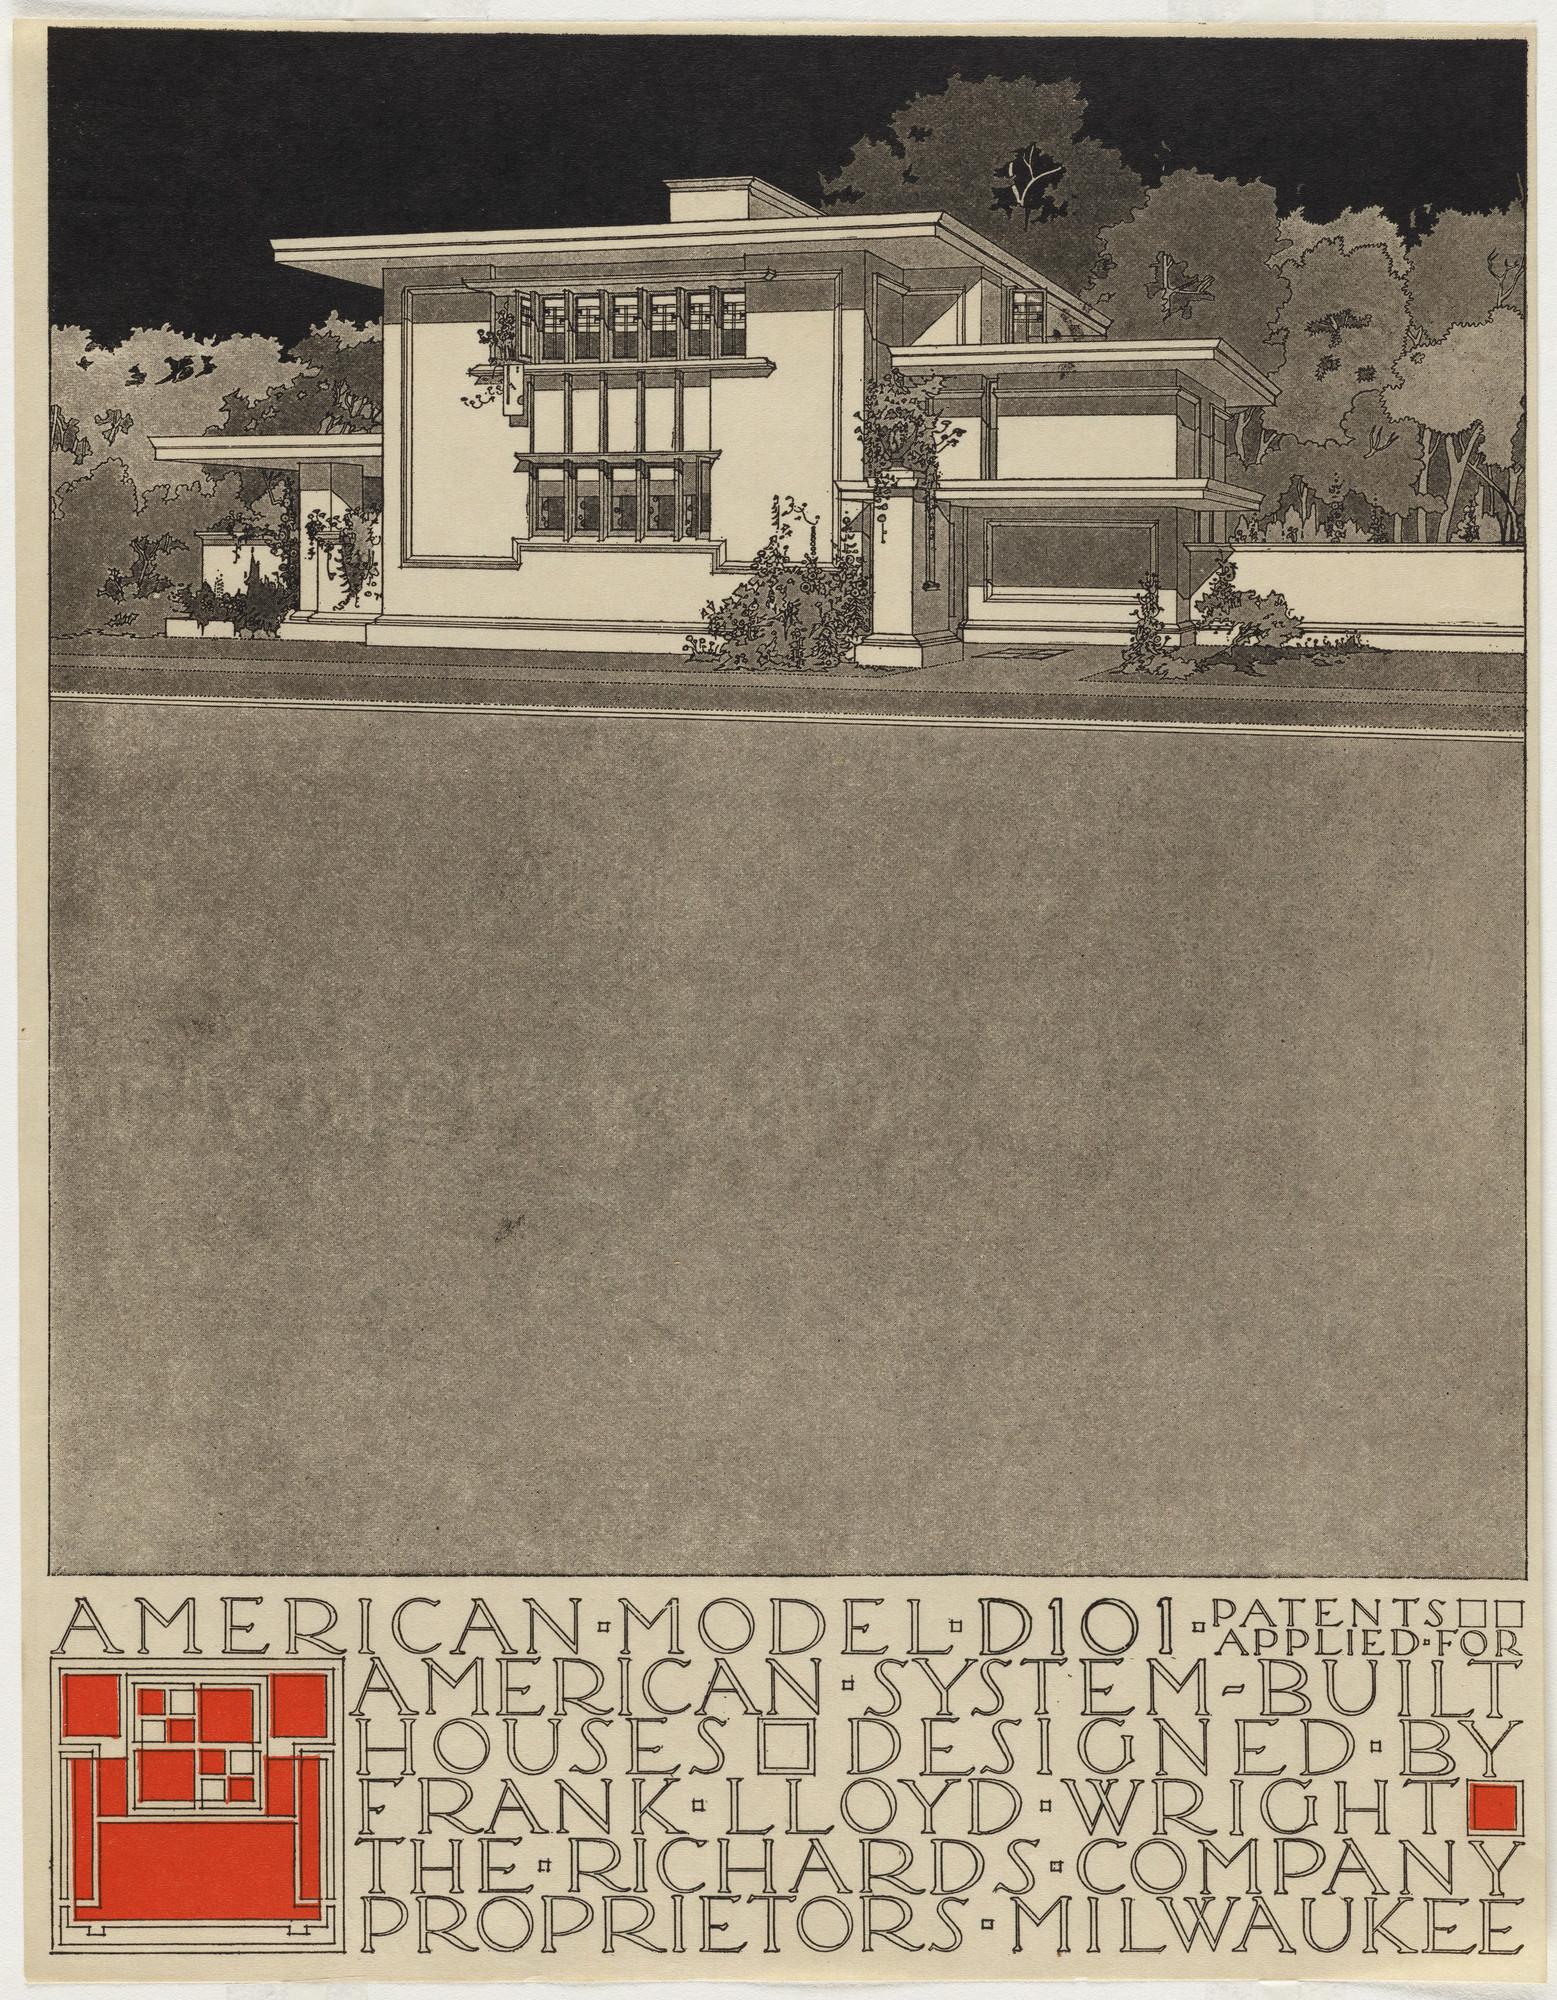 Frank Lloyd Wright. American System-Built Houses for The Richards Company project (Exterior perspective of model D101). 1915–1917